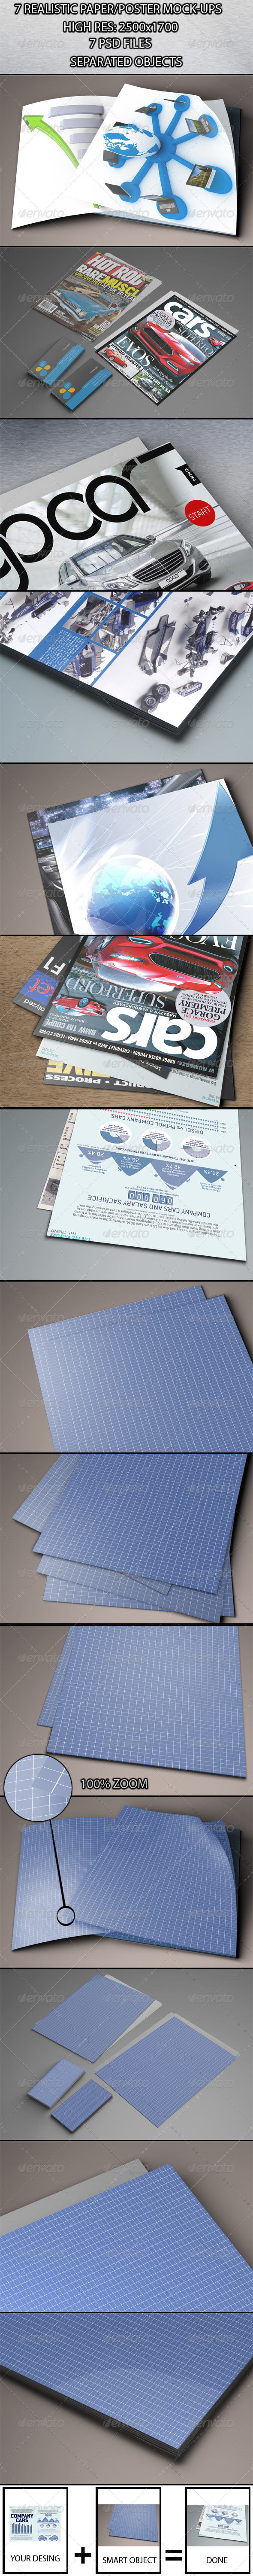 GraphicRiver 7 Realistic Paper Poster Mock-ups 6167862